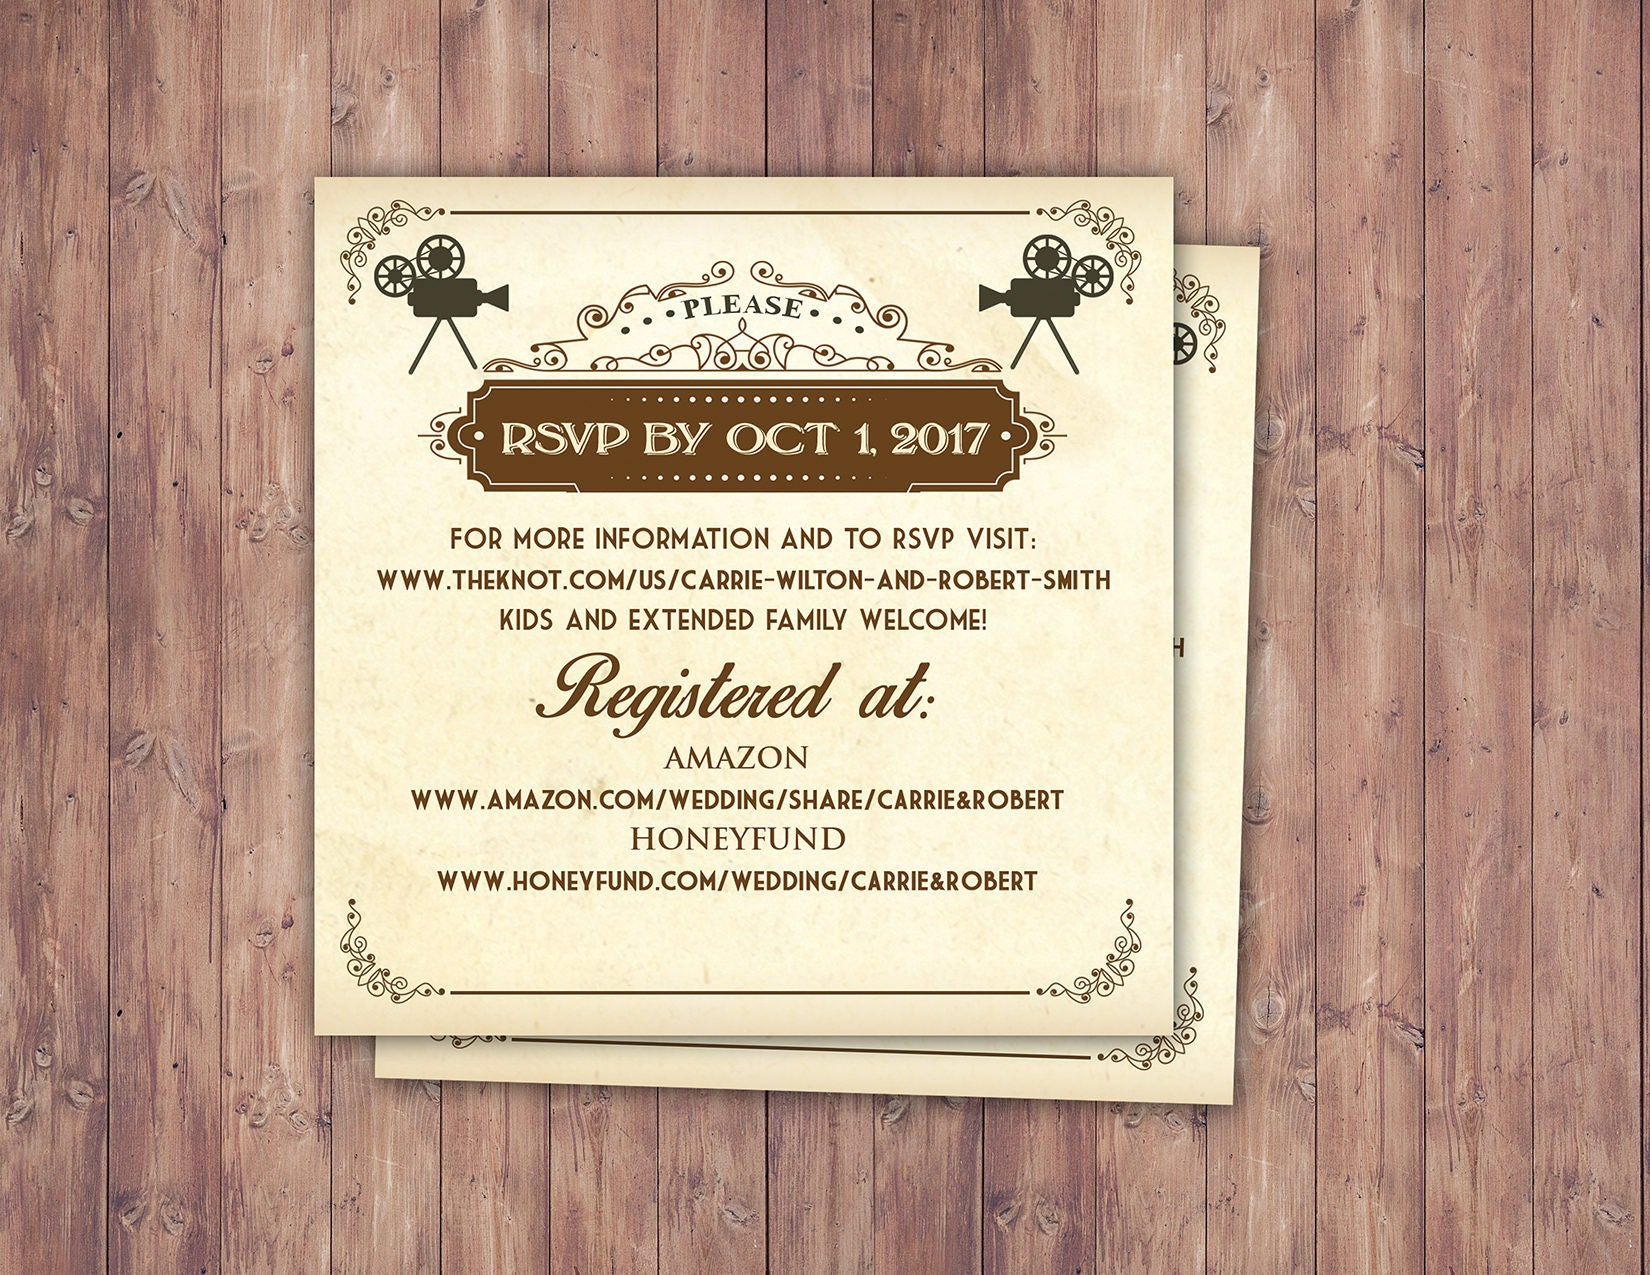 Art DecoVintage Retro Save the Date Ticket Announcement, wedding ...